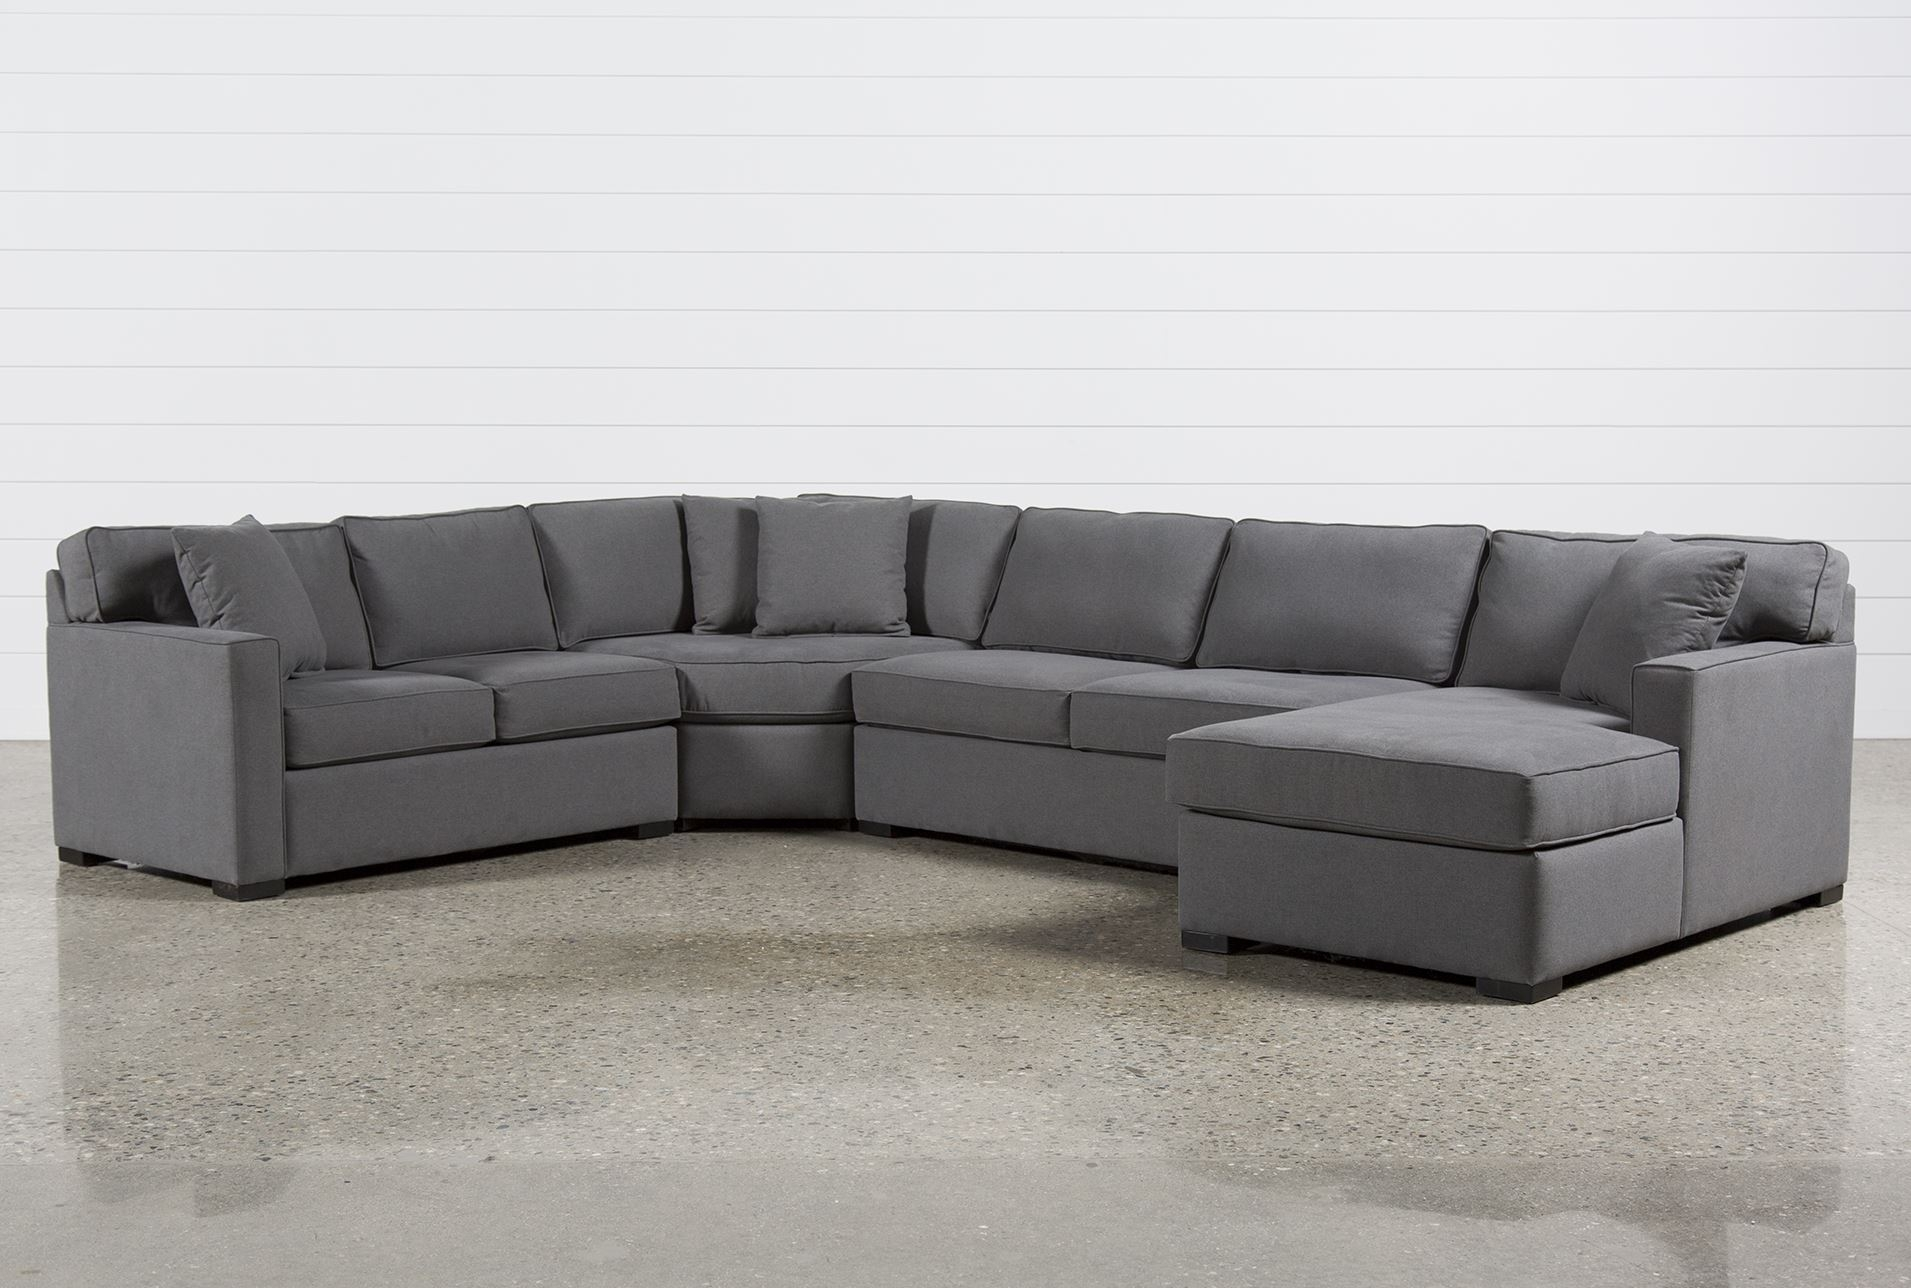 Stunning 45 Degree Sectional Sofa 50 In Motion Sectional Sofas With 45 Degree Sectional Sofa (#12 of 12)